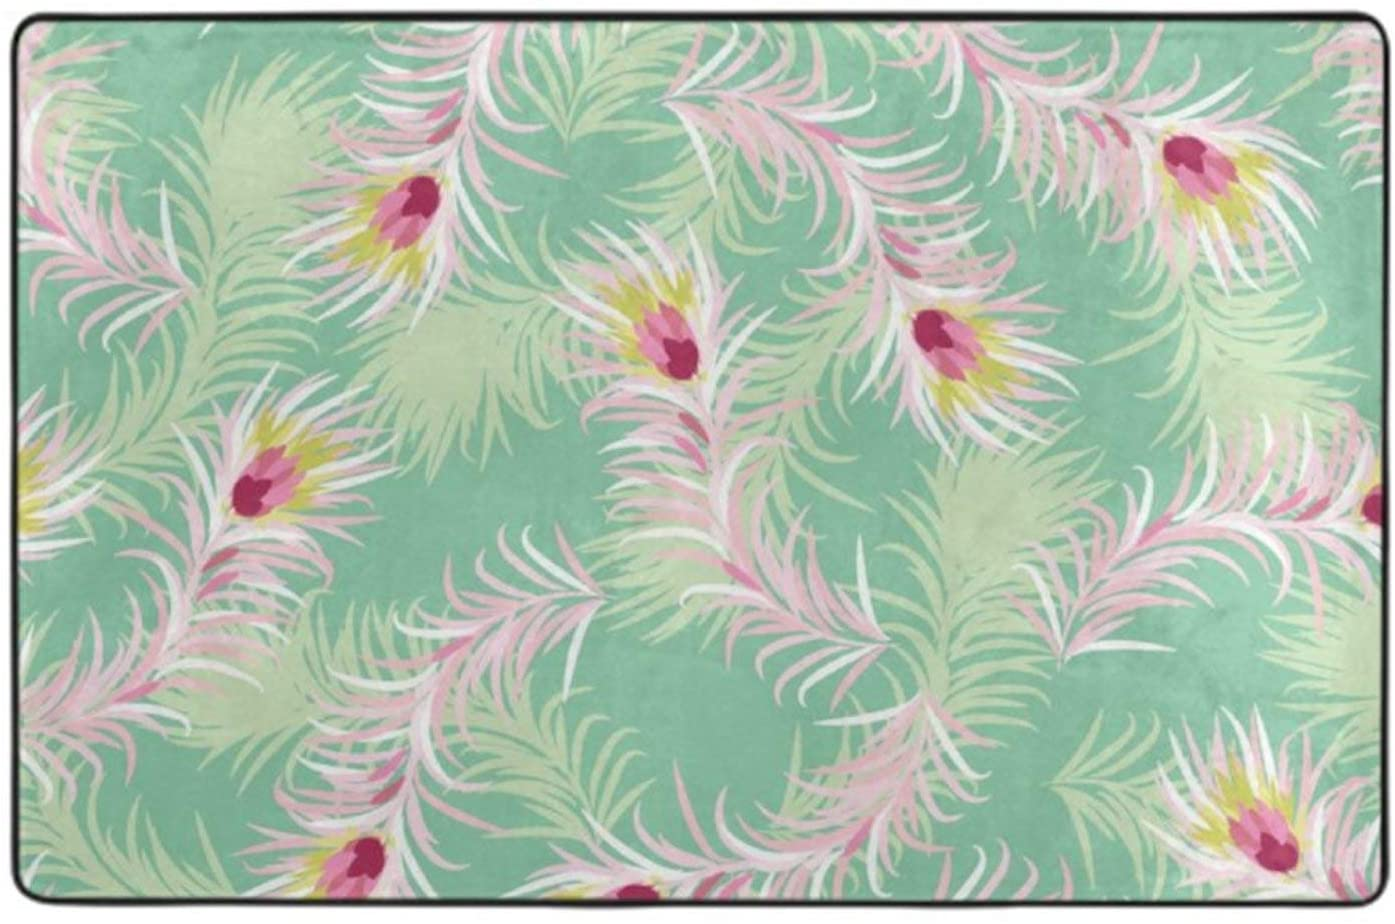 Living Room Floor Carpet Pink Peacock Feathers Mint Green Rug Warm Foot 60 x 39 for Indoor Living Dining Room and Bedroom Area